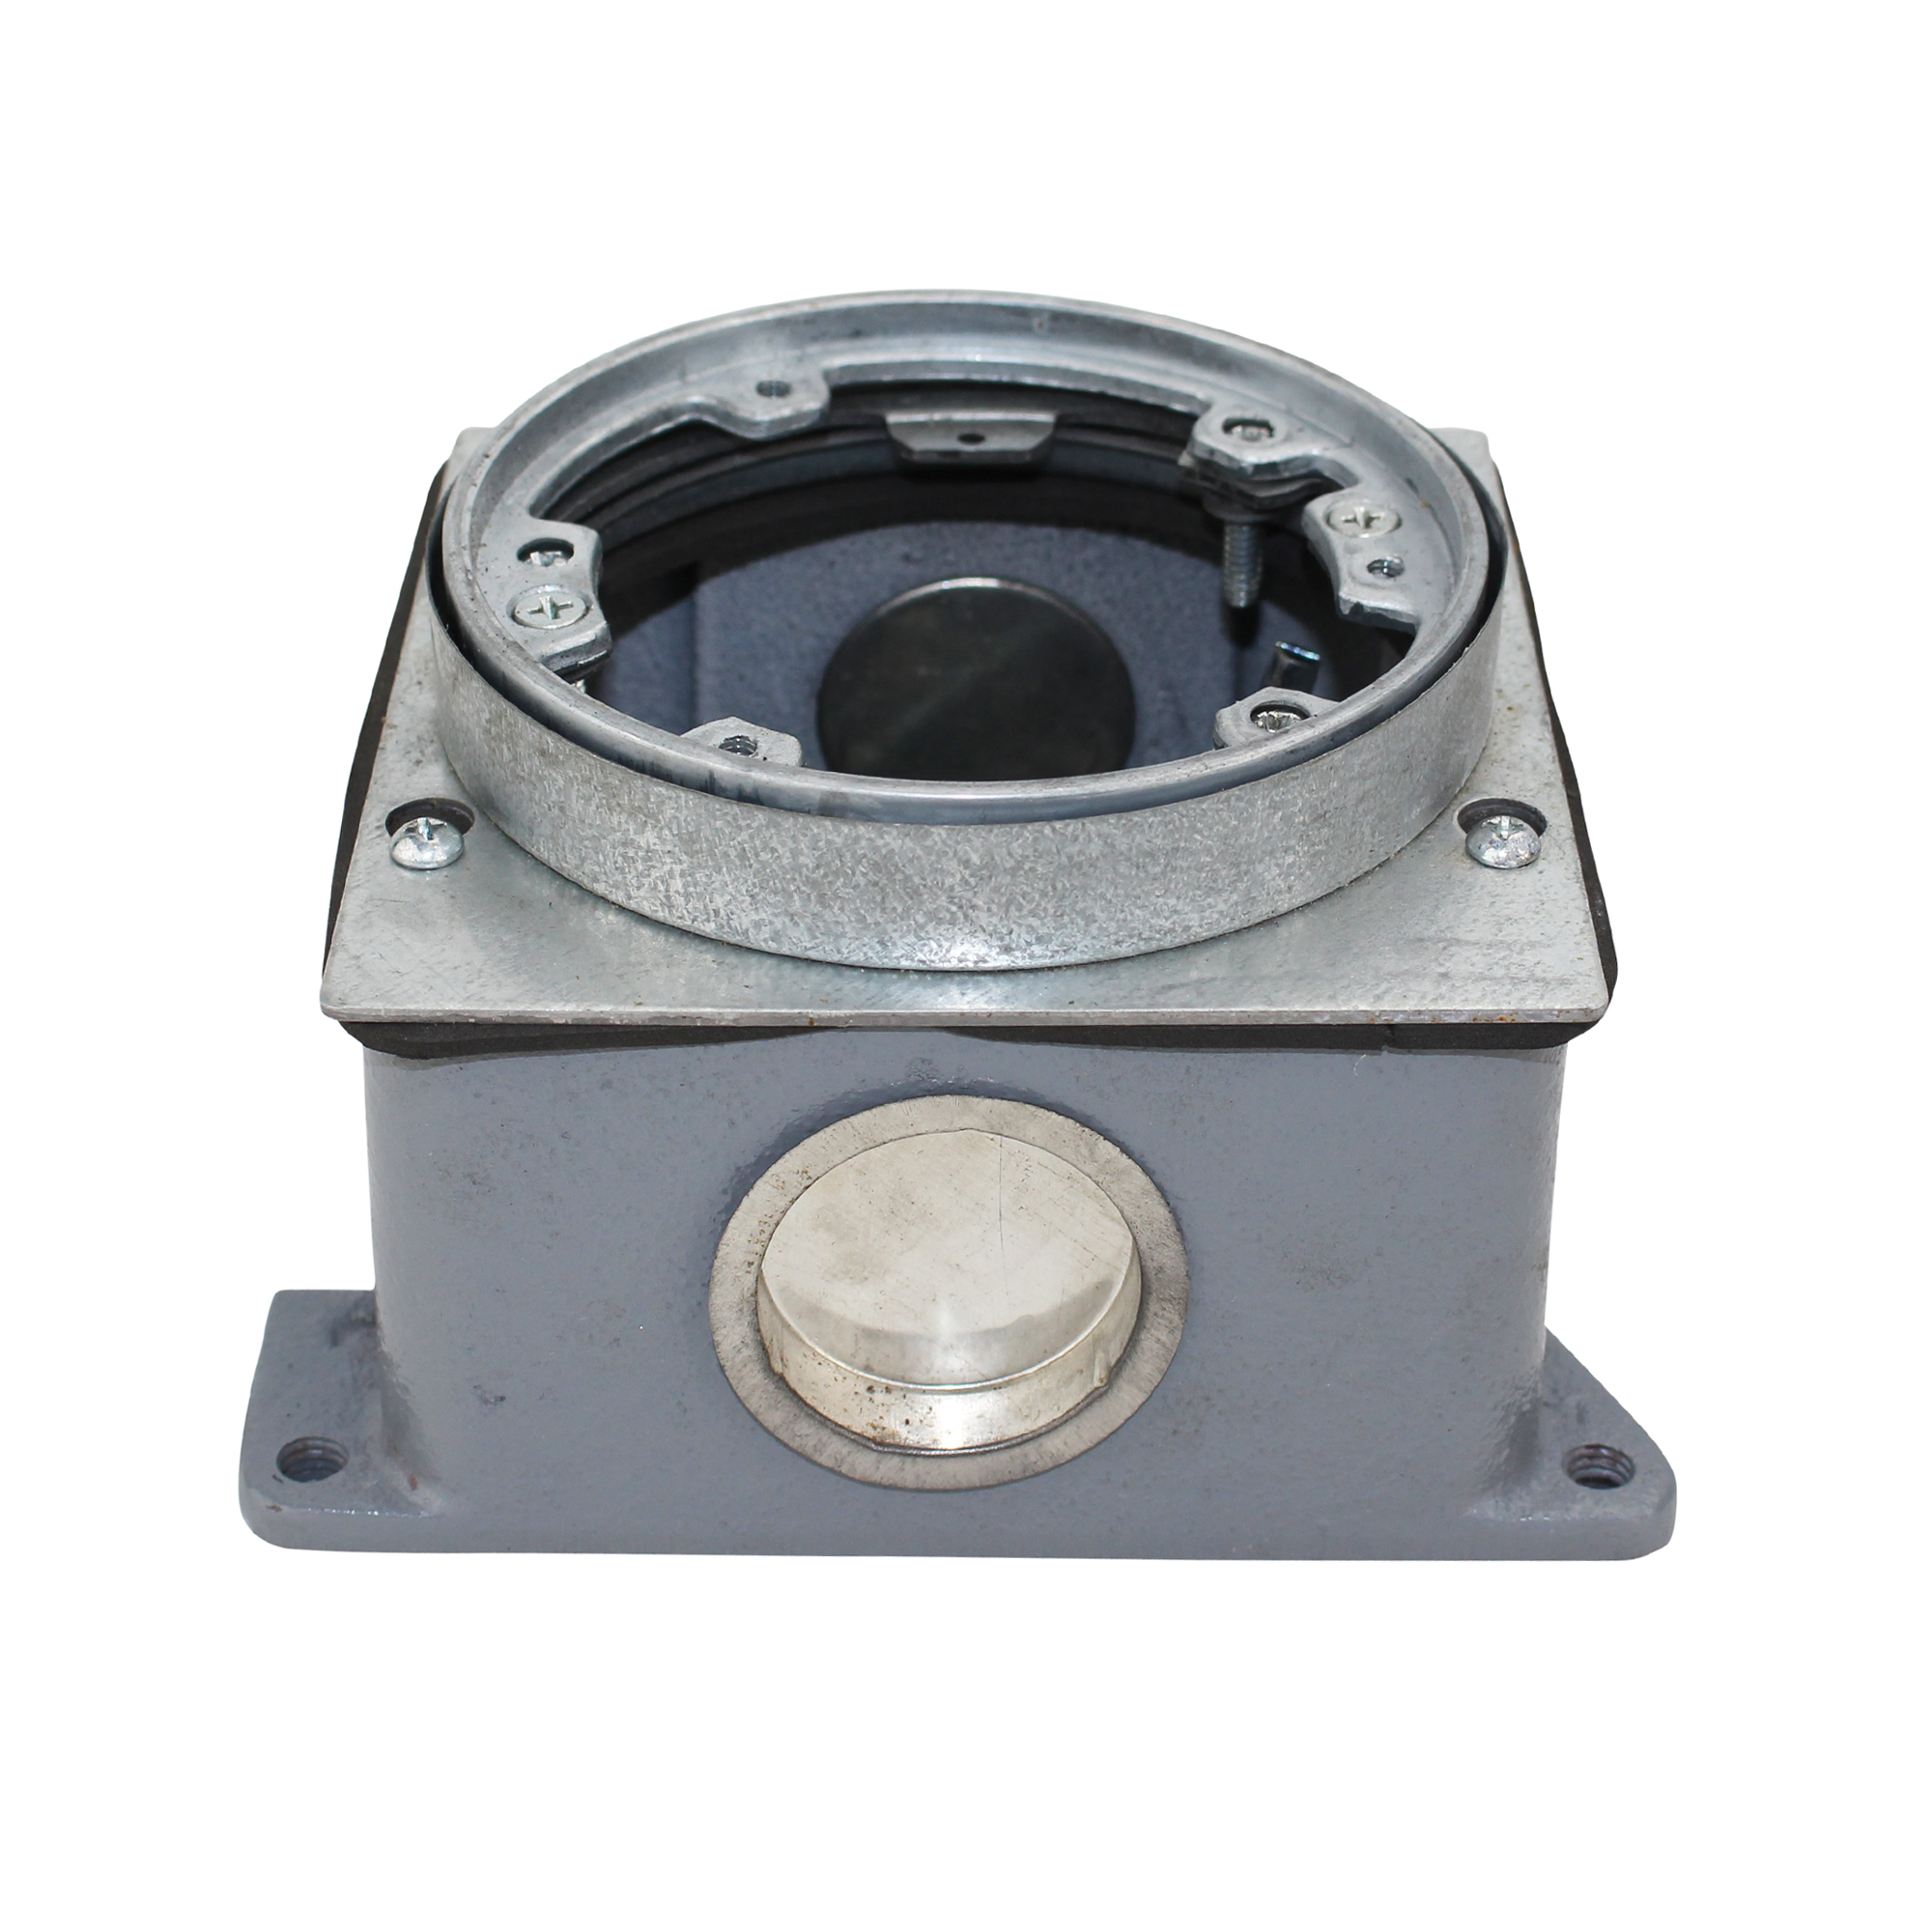 Wiremold legrand b cast iron floor box outlet